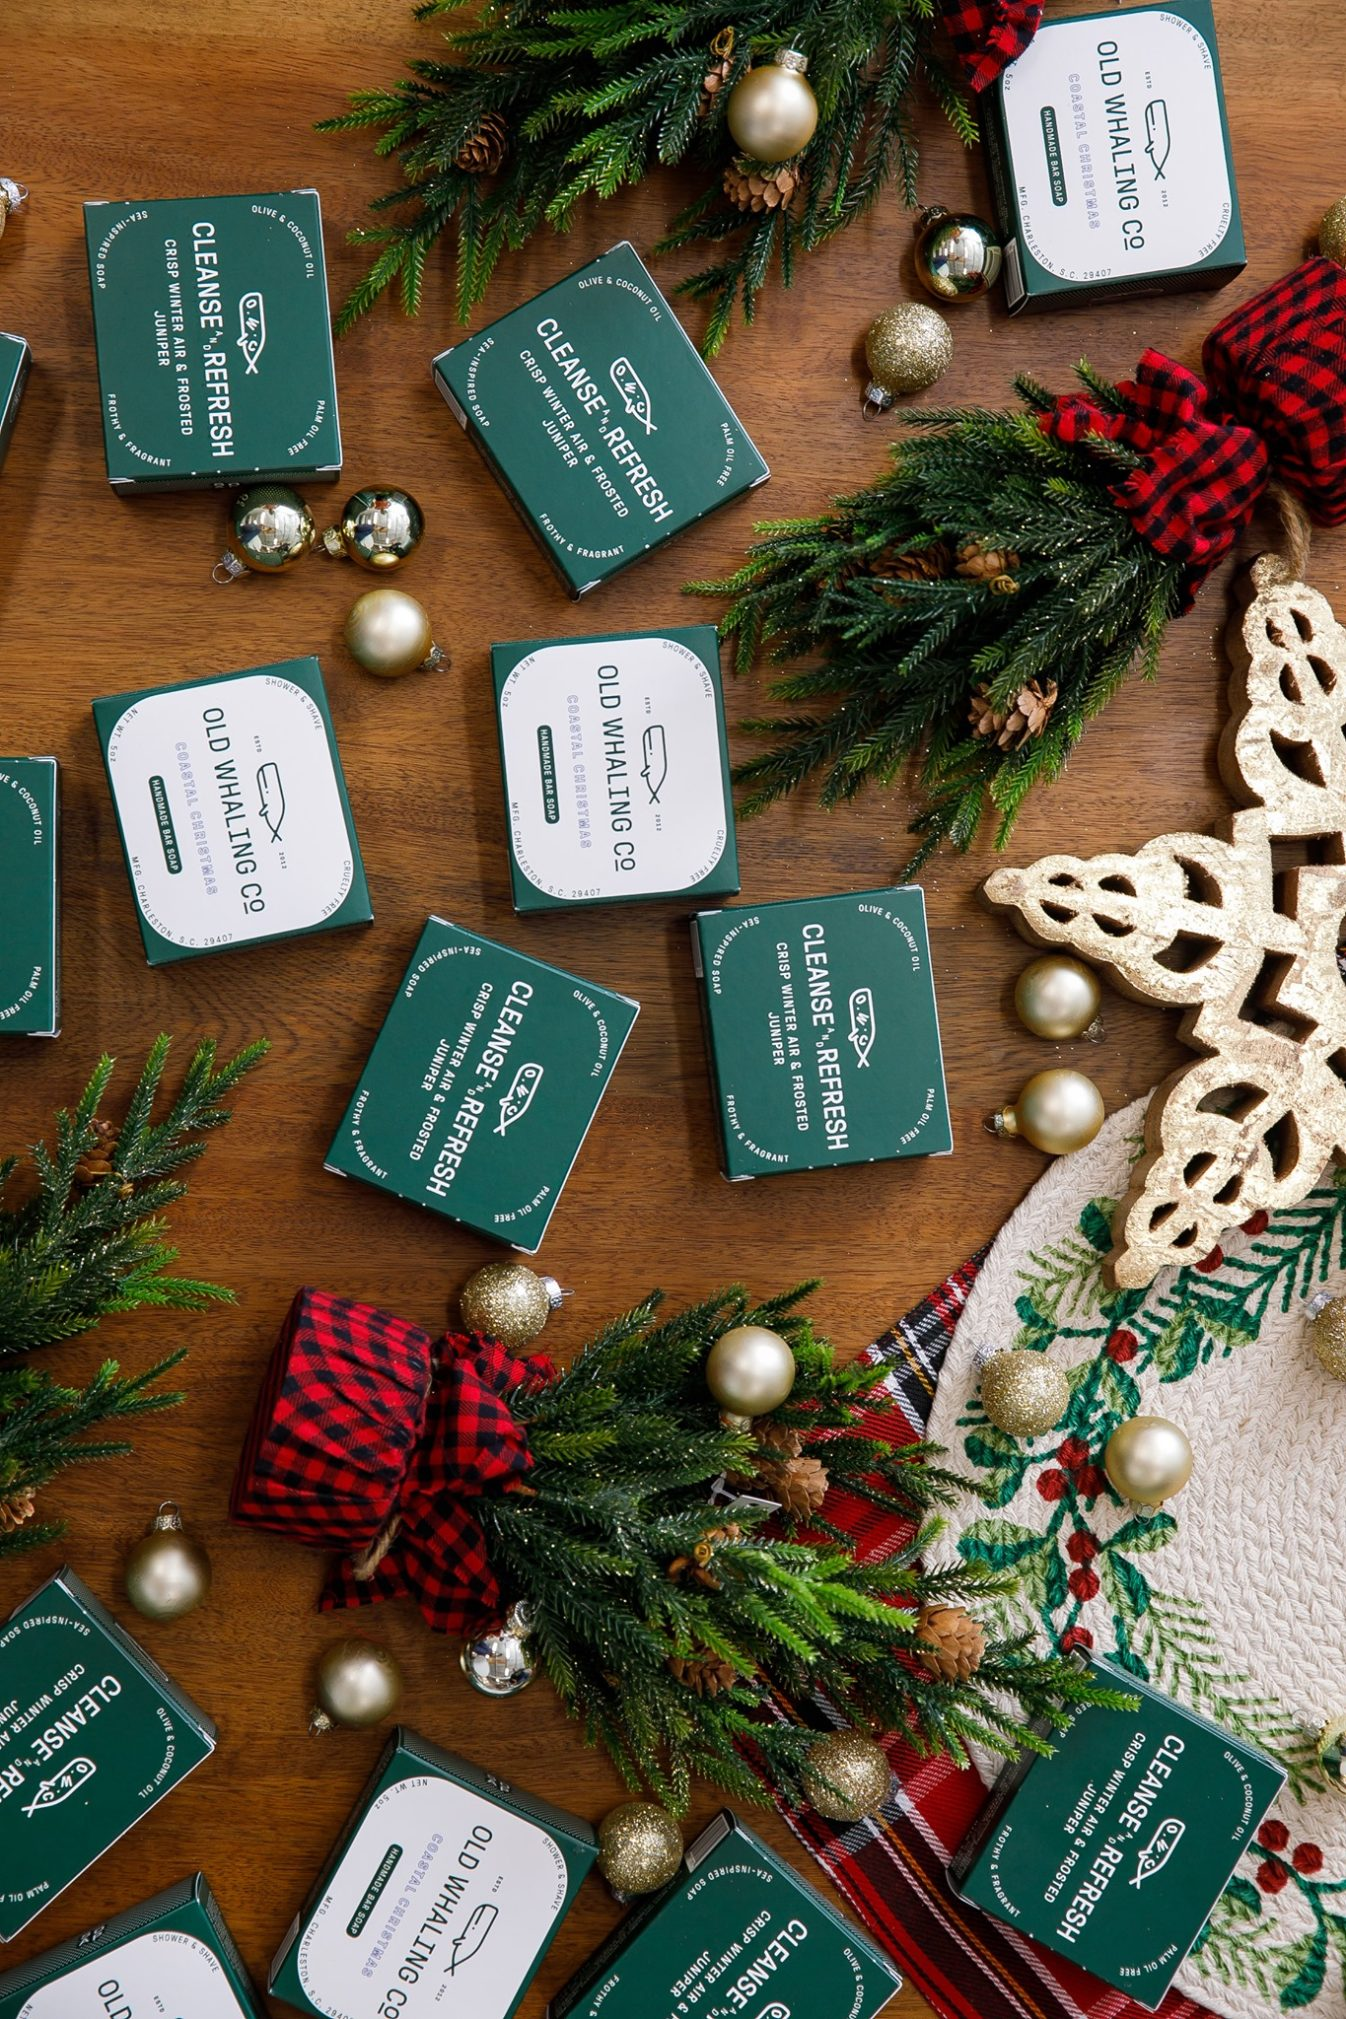 On The 10th Day of Christmas Giveaway Old Whaling Co. Coastal Christmas Collection | Rhyme & Reason